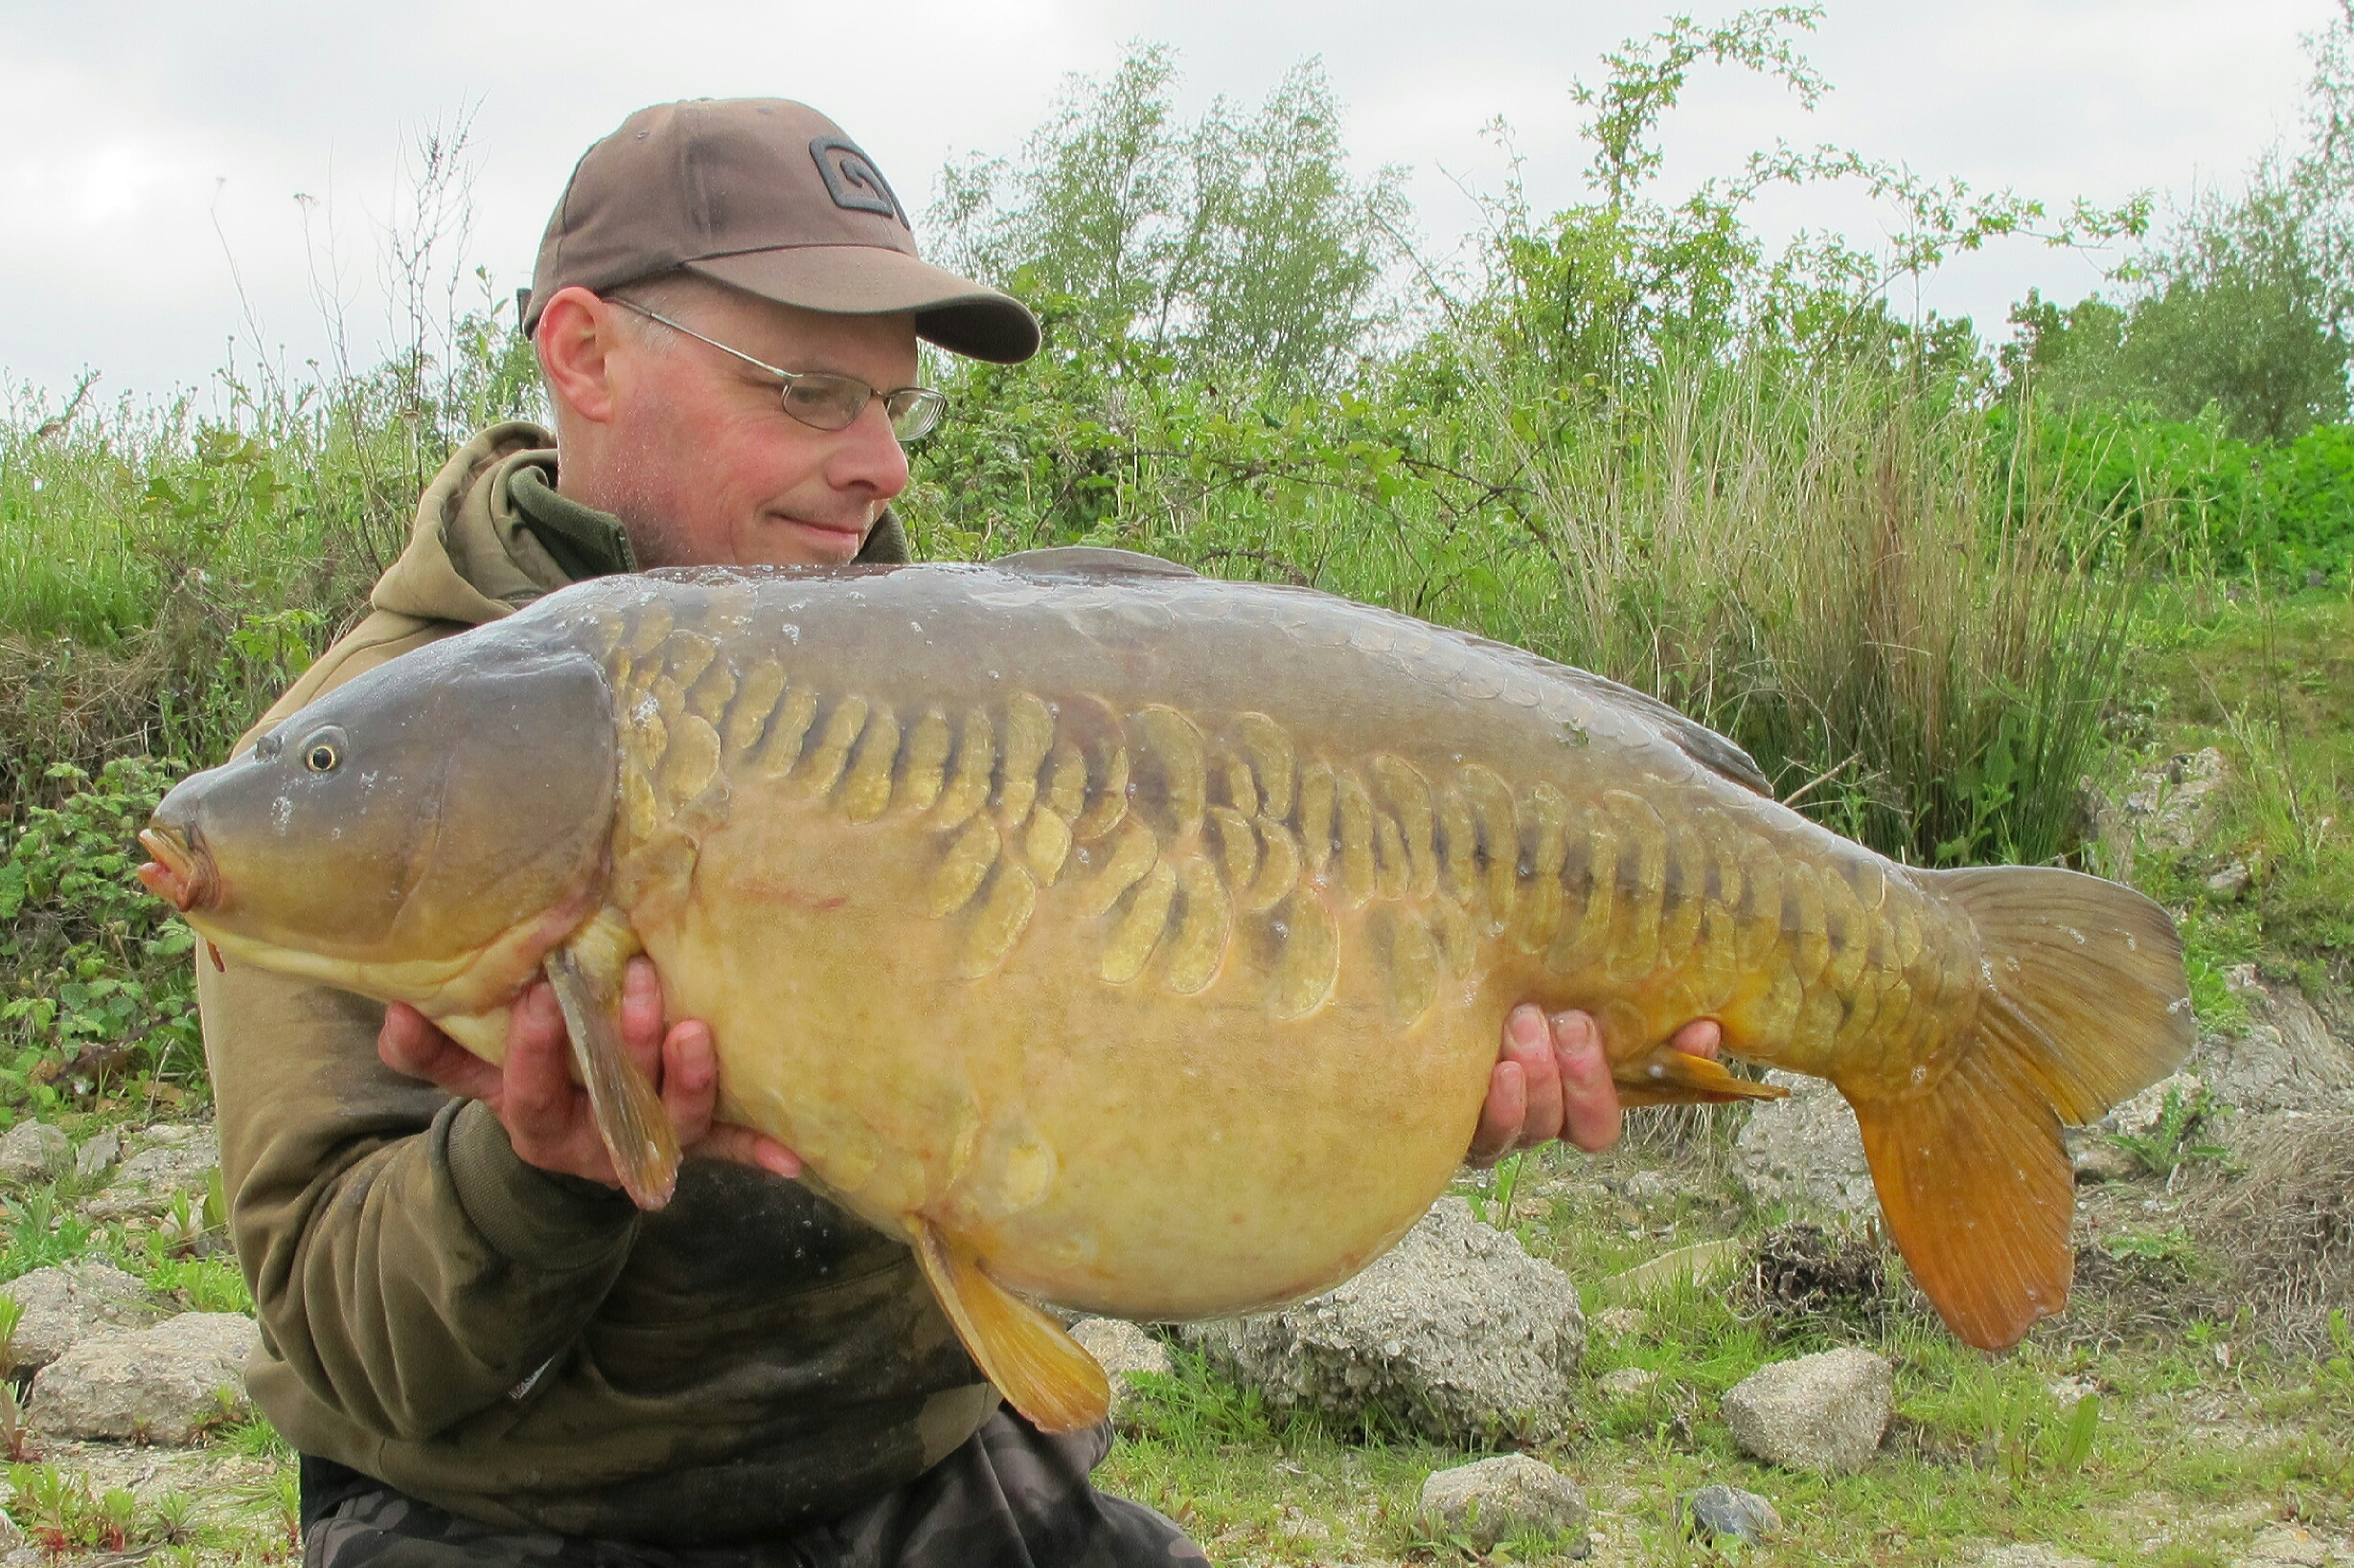 This 35-14 mirror is a rare visitor to the bank.